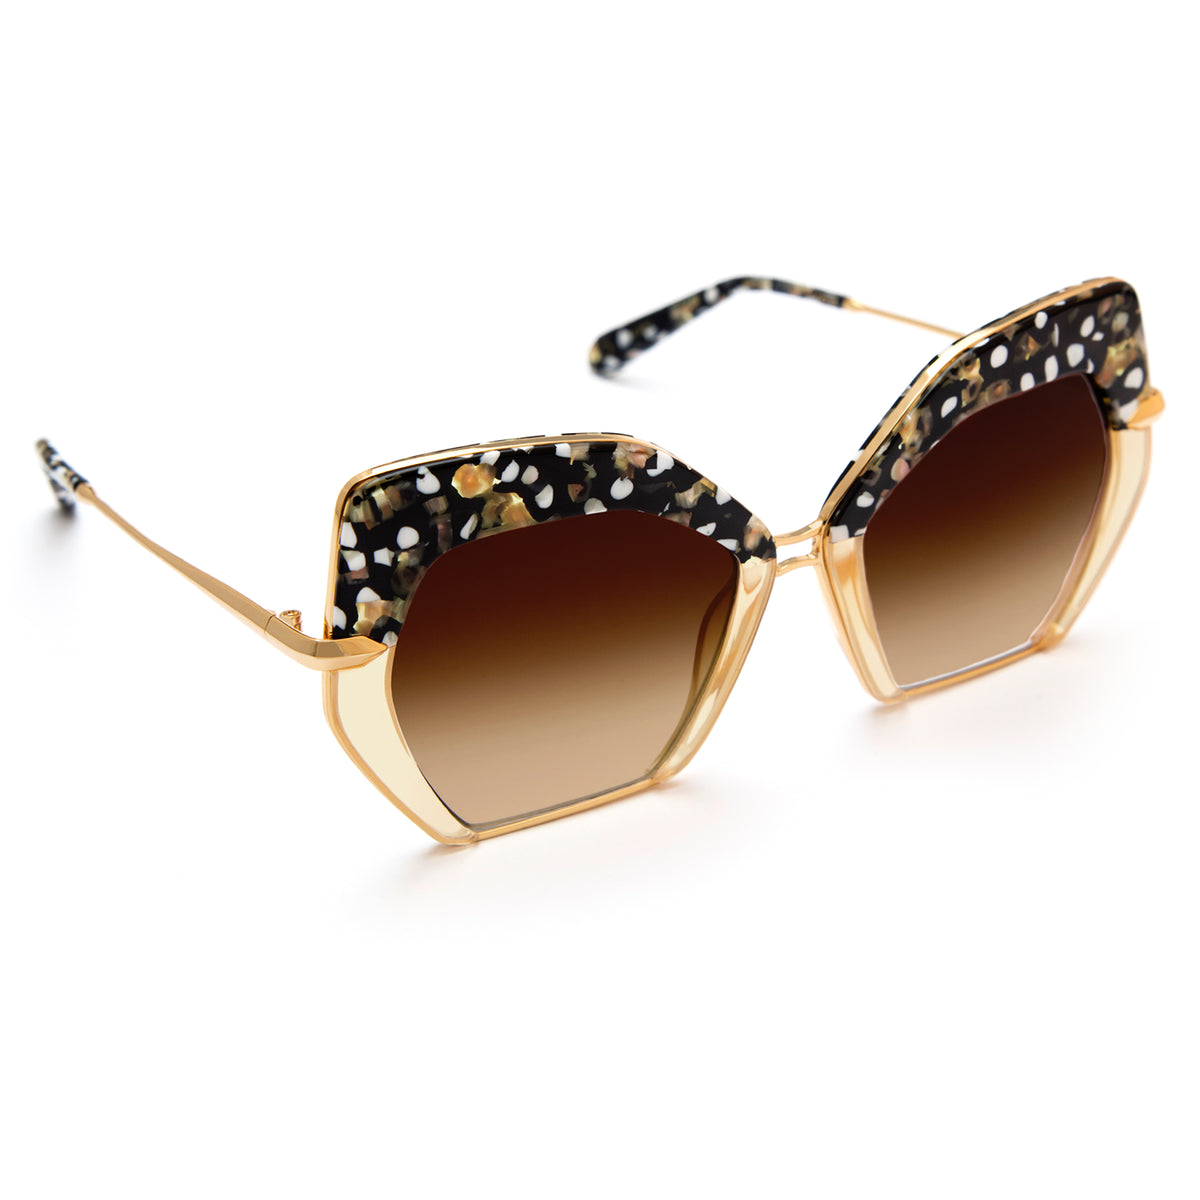 OCTAVIA | Plume to Champagne 24K Oversized acetate and metal Sunglasses.